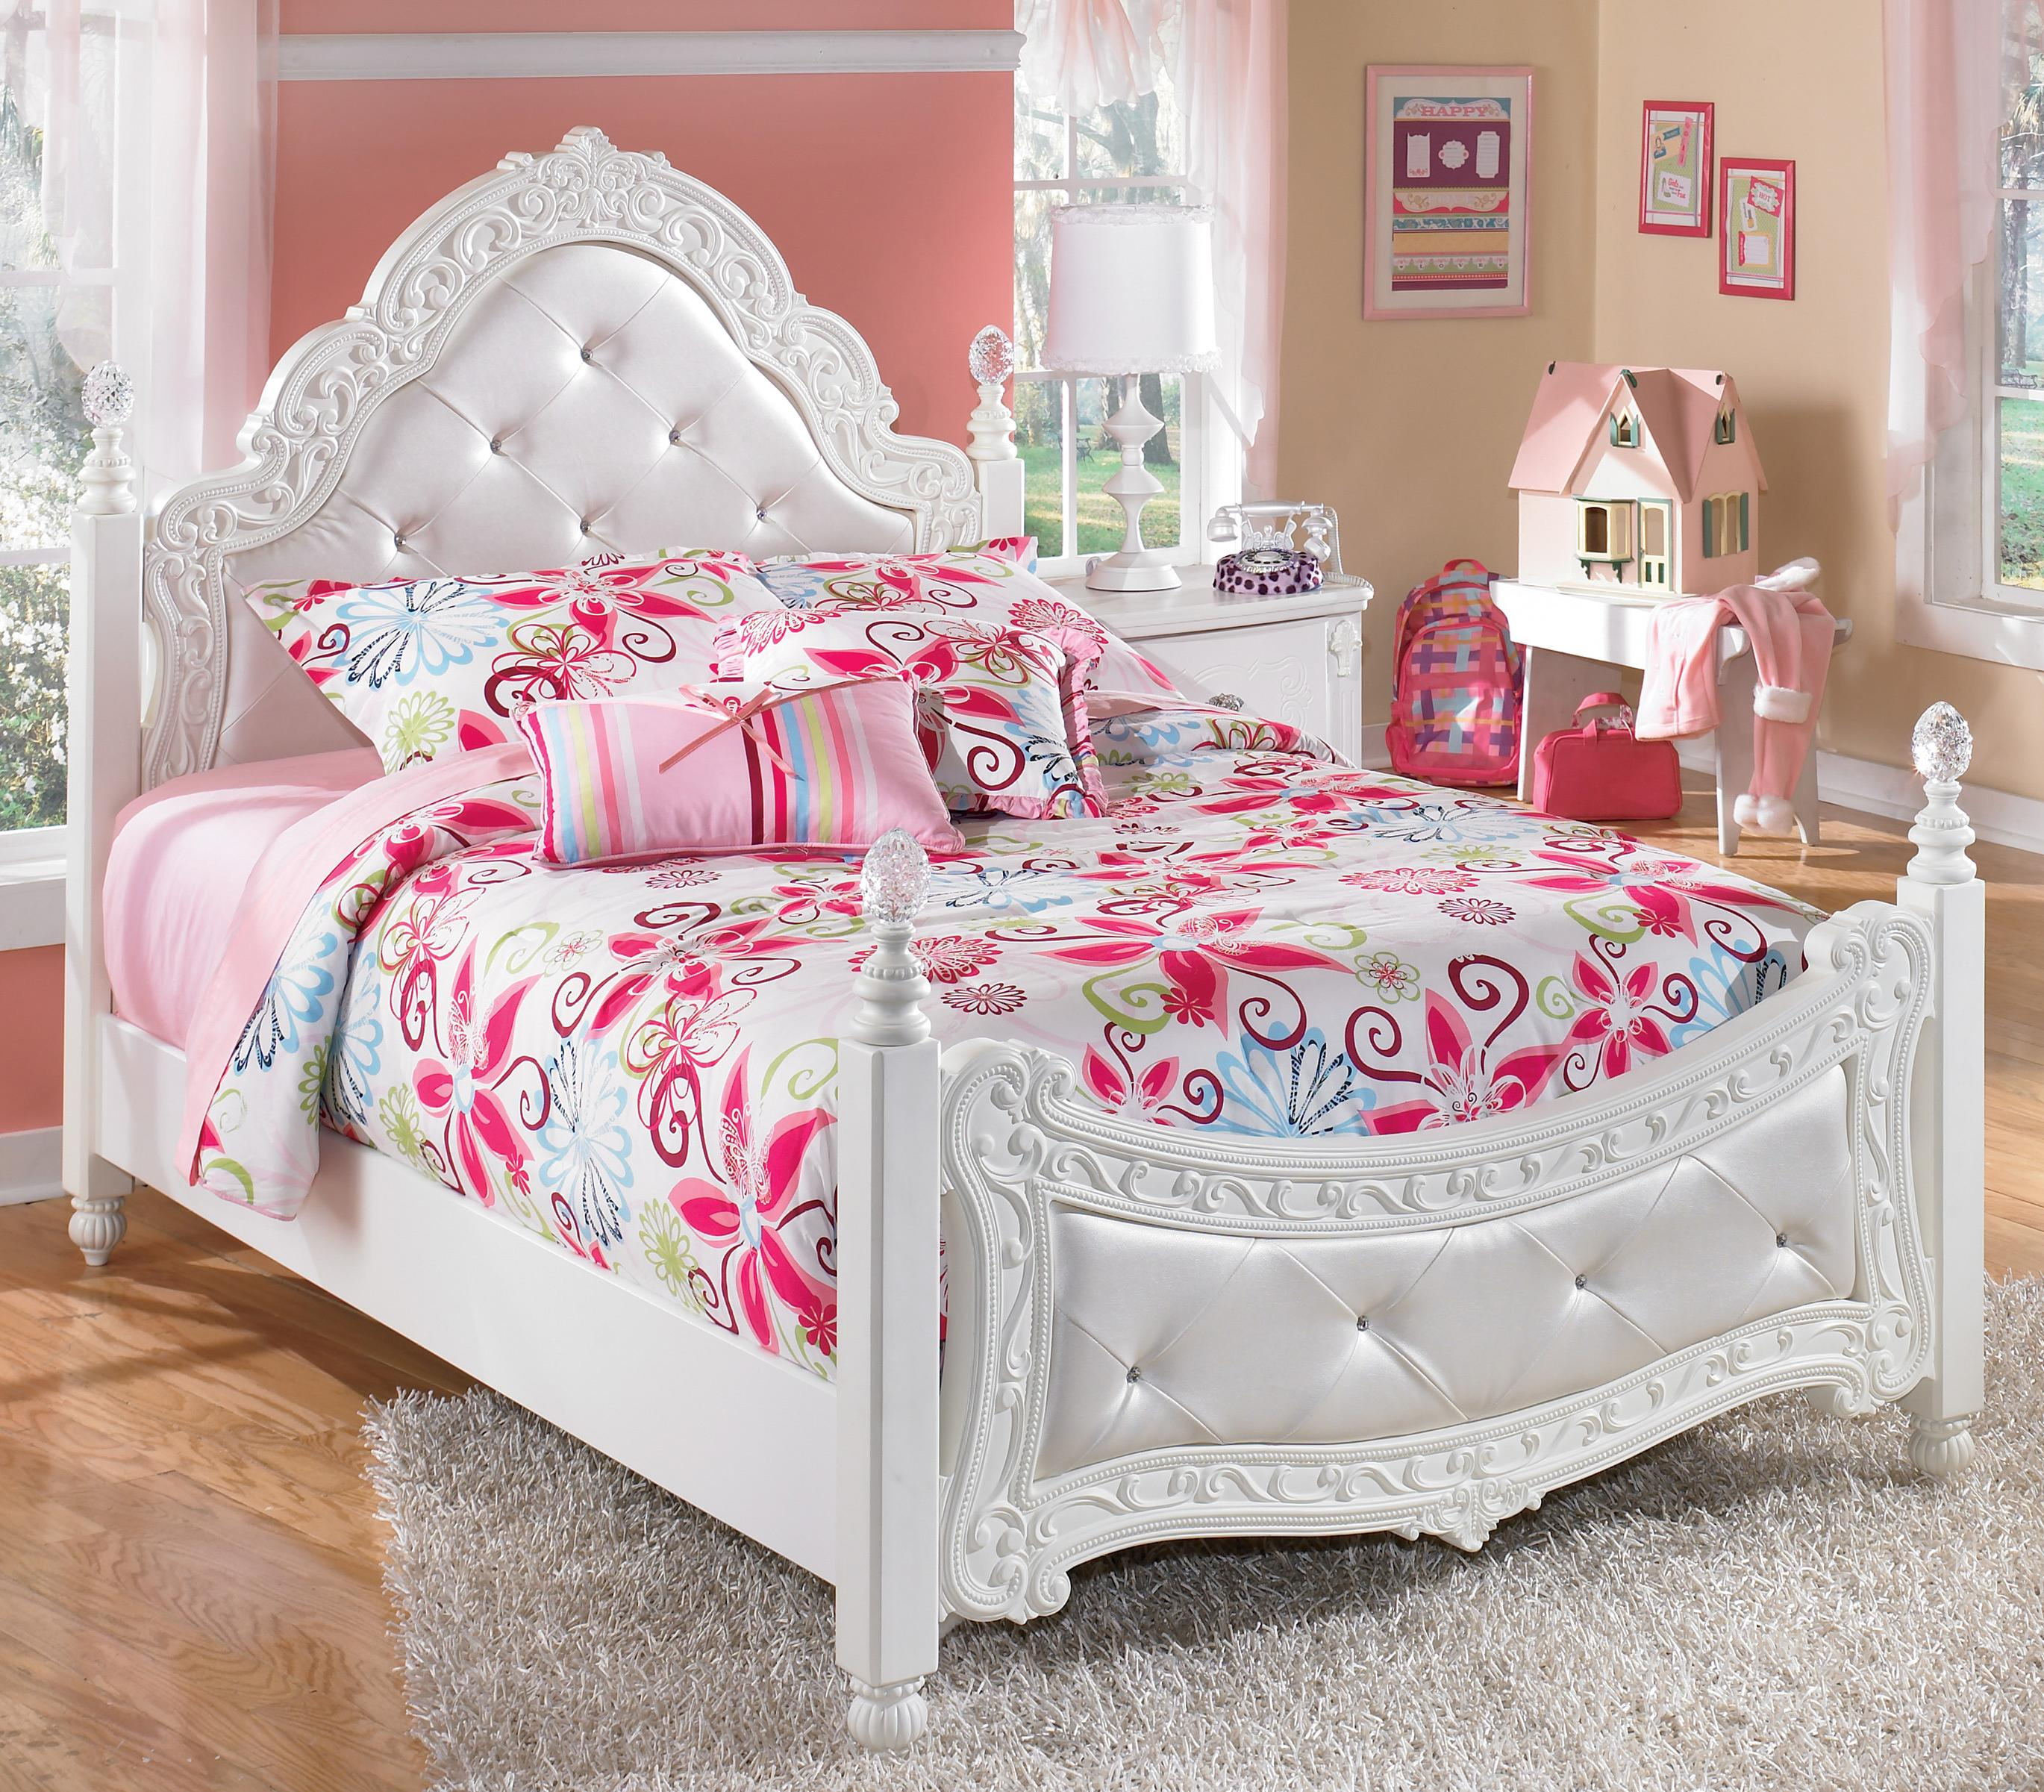 Ashley Furniture Signature Design Exquisite B188 72 89 Full Ornate Poster Bed With Tufted Headboard Footboard Del Sol Furniture Upholstered Beds